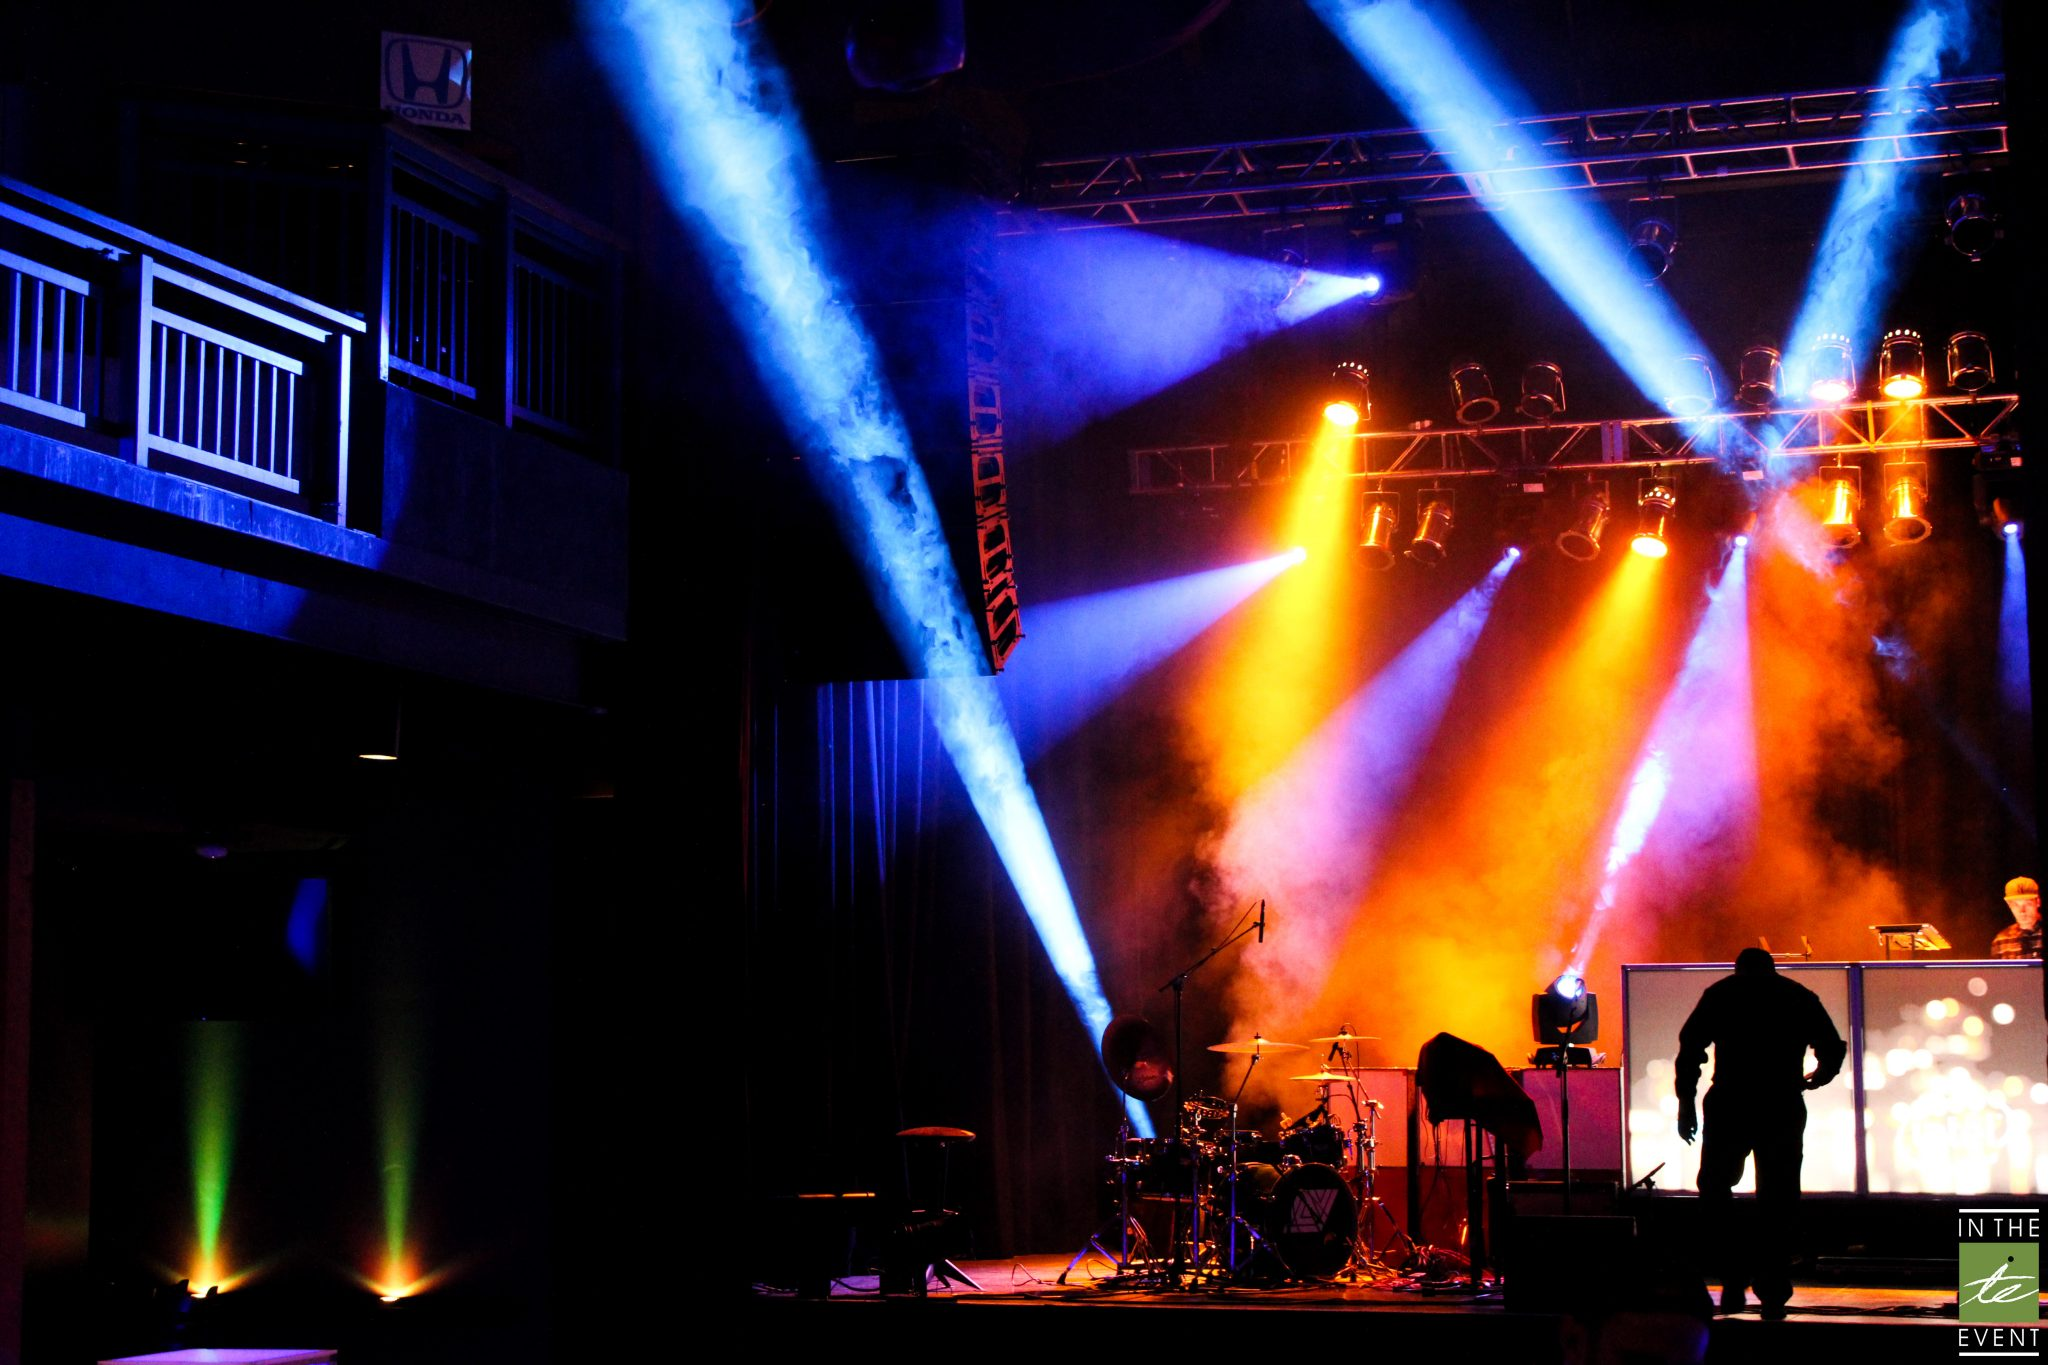 In The Event | Professional Lighting Design